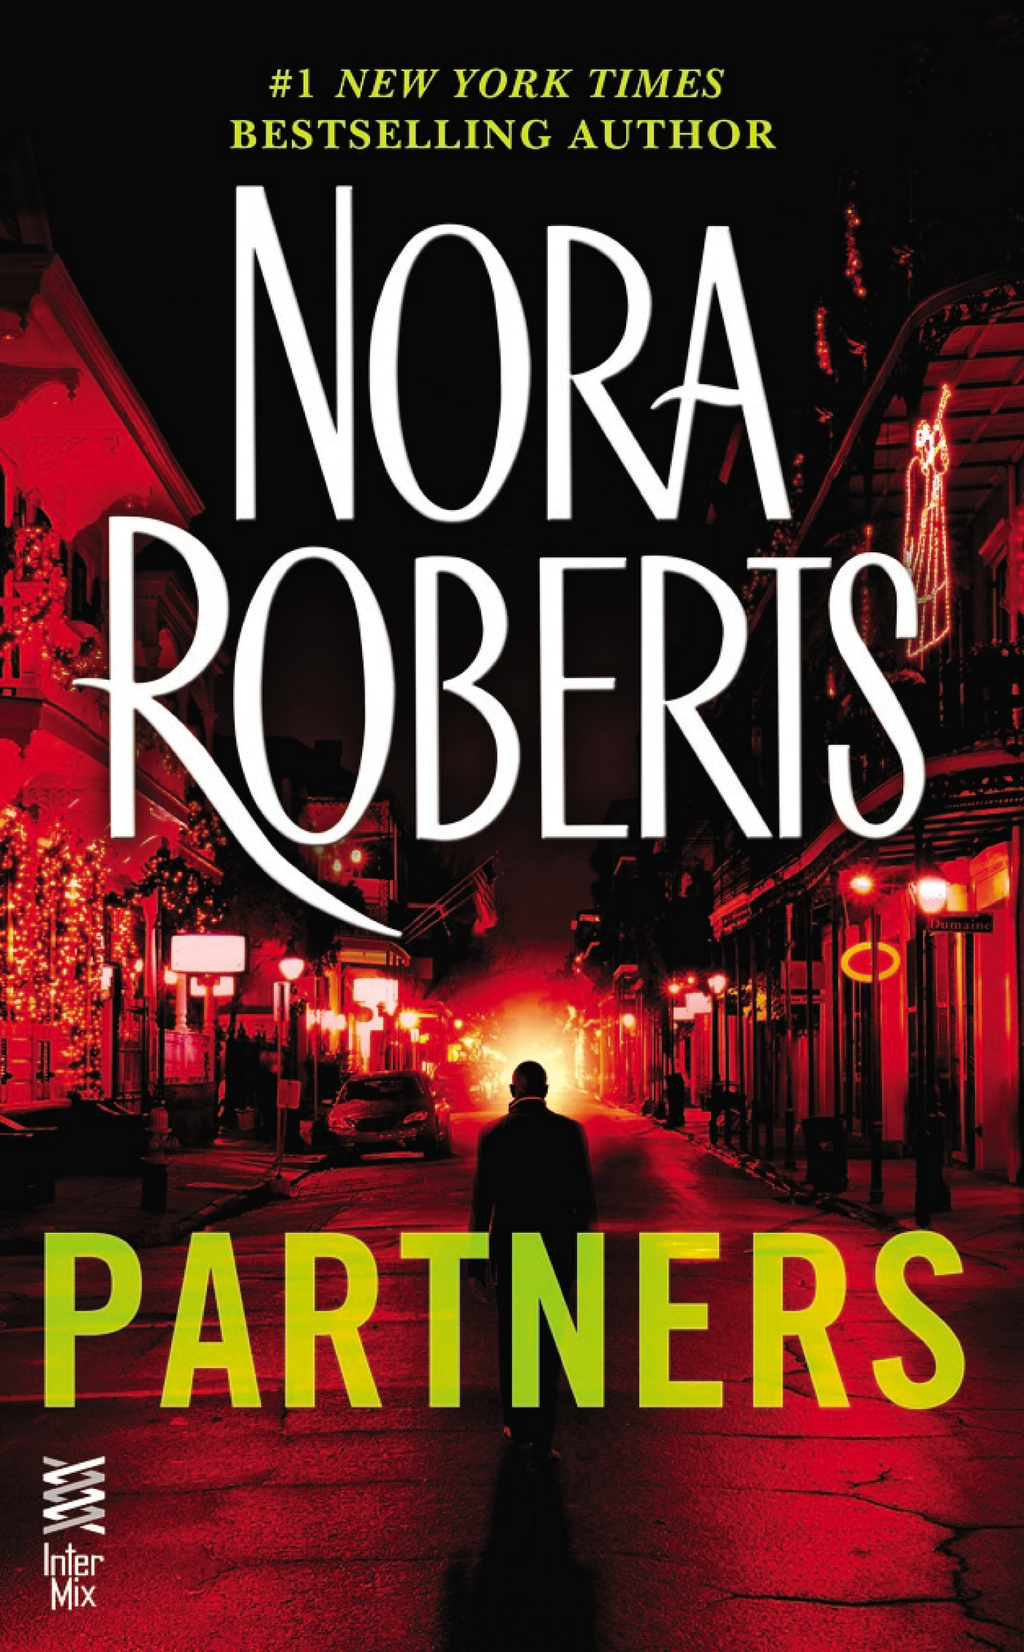 Partners By: Nora Roberts